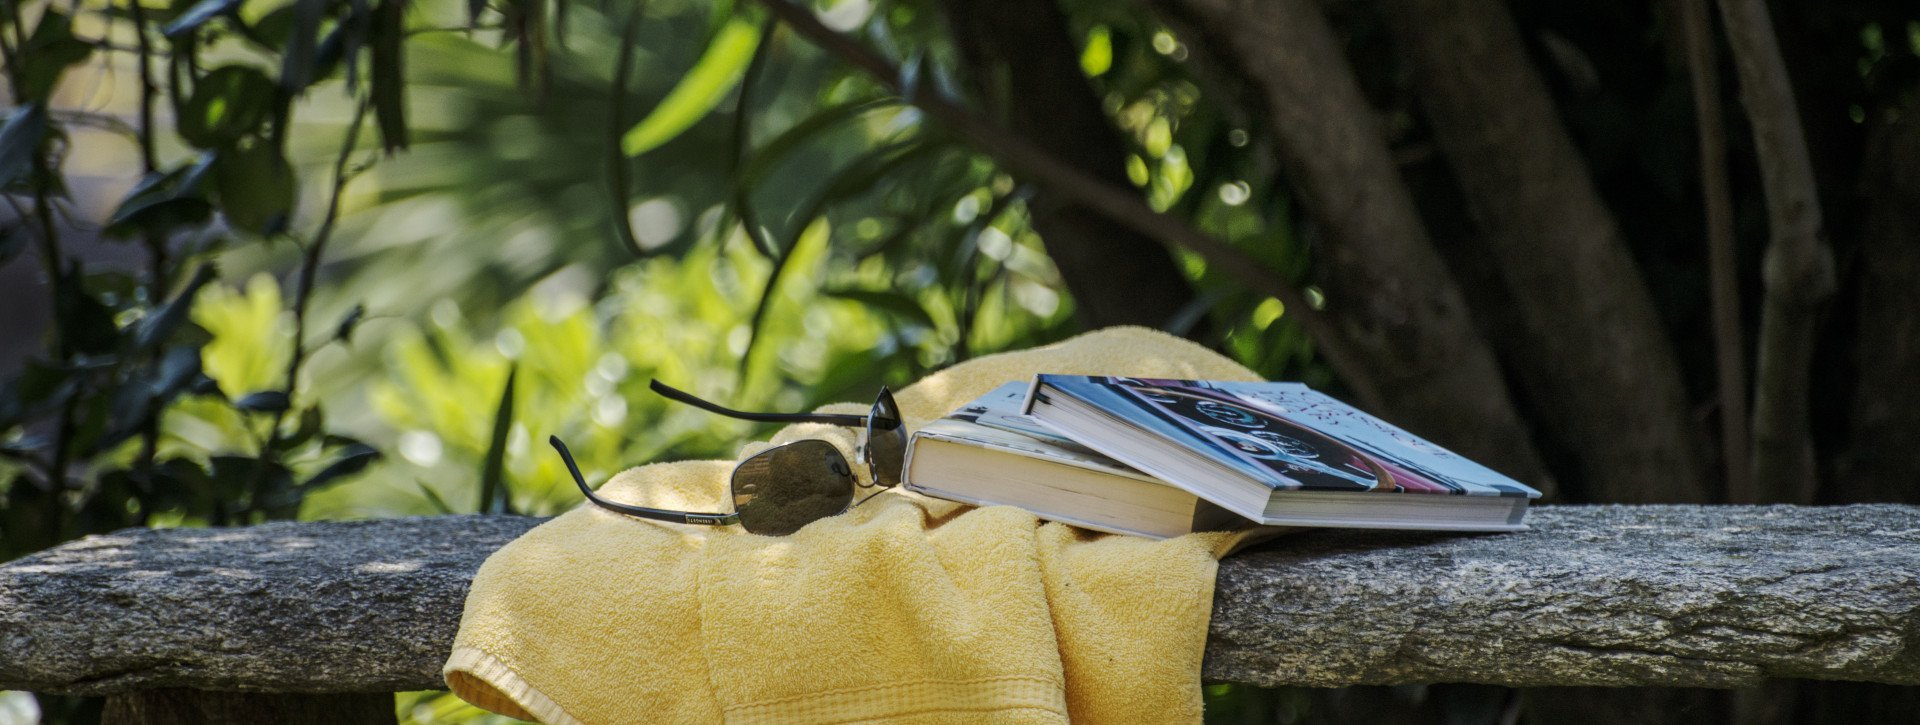 A towel, books and sun glasses